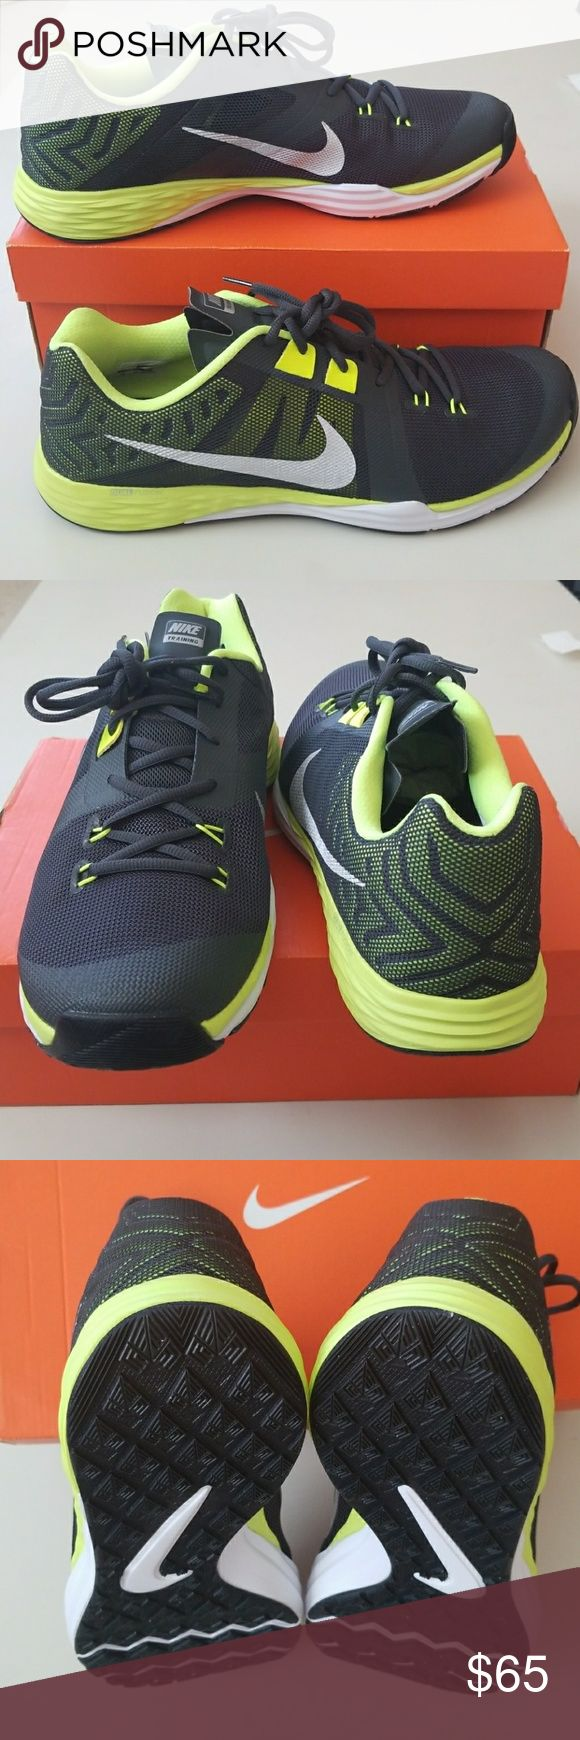 NWT Men's Nike Running Shoes New Nike Dual Fusion training sports shoes. Really cool shoes for Mr. Big Guy😊 Nike Shoes Athletic Shoes